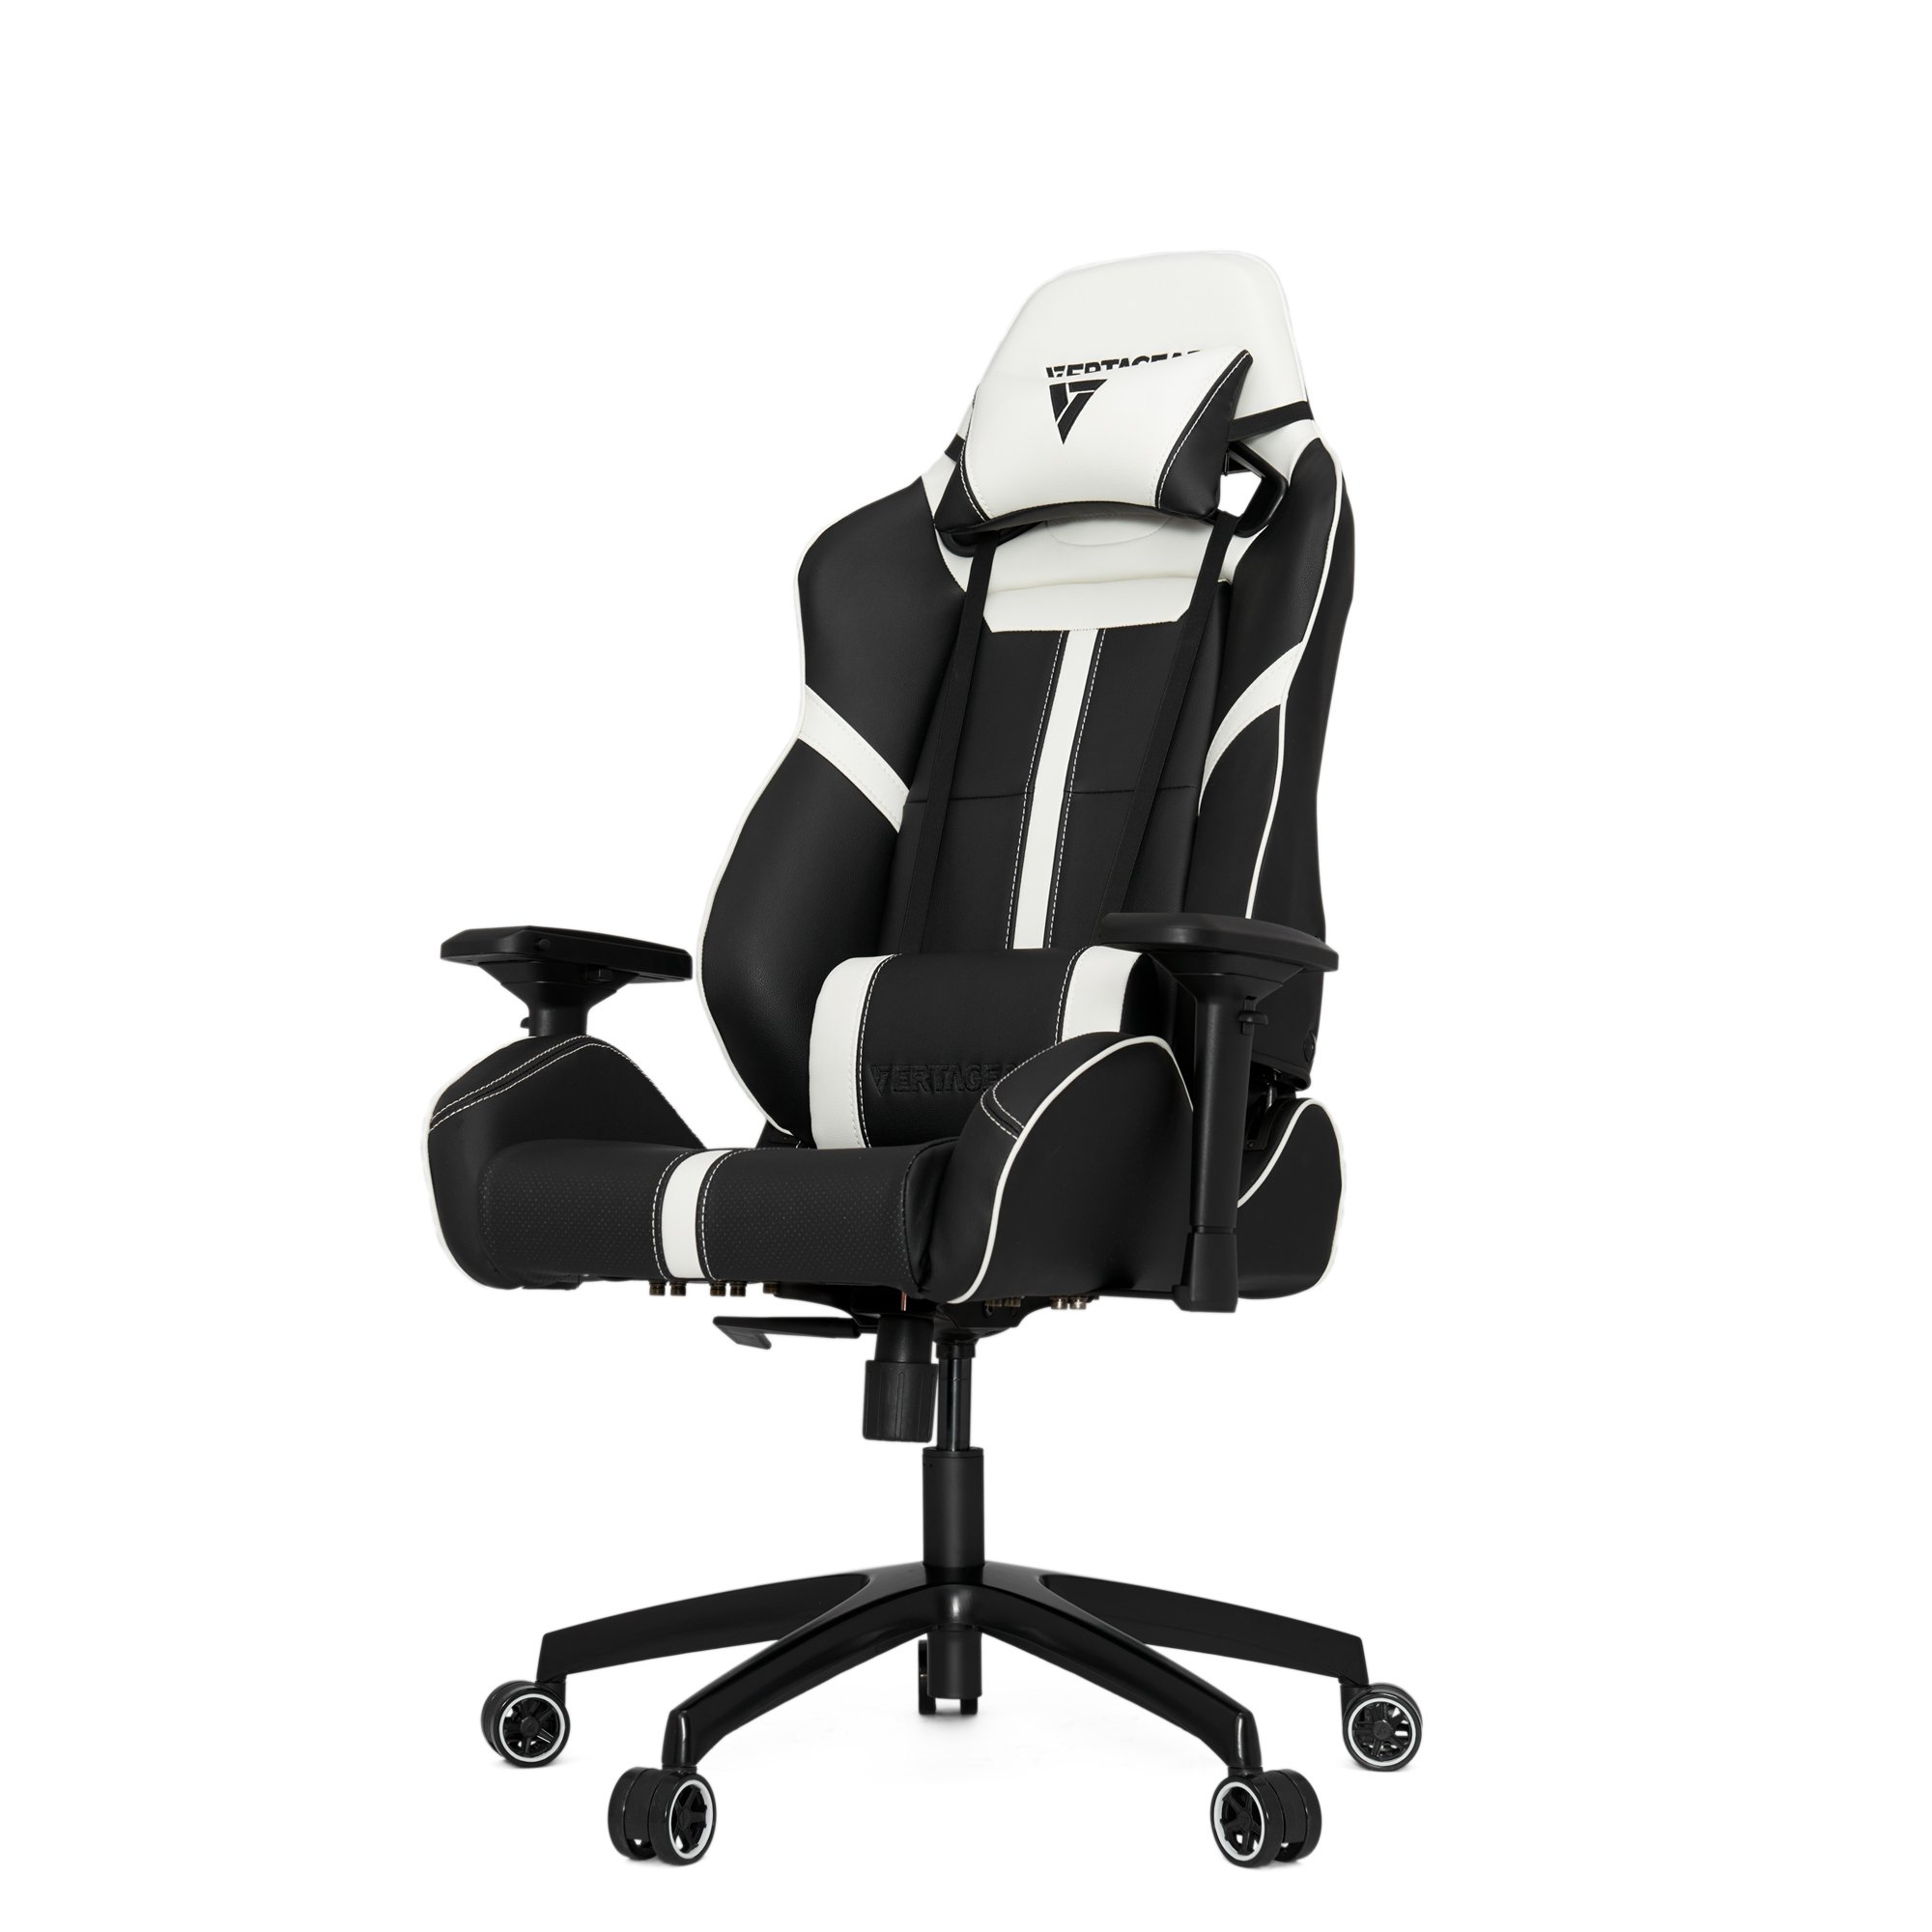 Vertagear VG-SL5000_WT S-Line 5000 Gaming Chair, Large, Black/White by VERTAGEAR